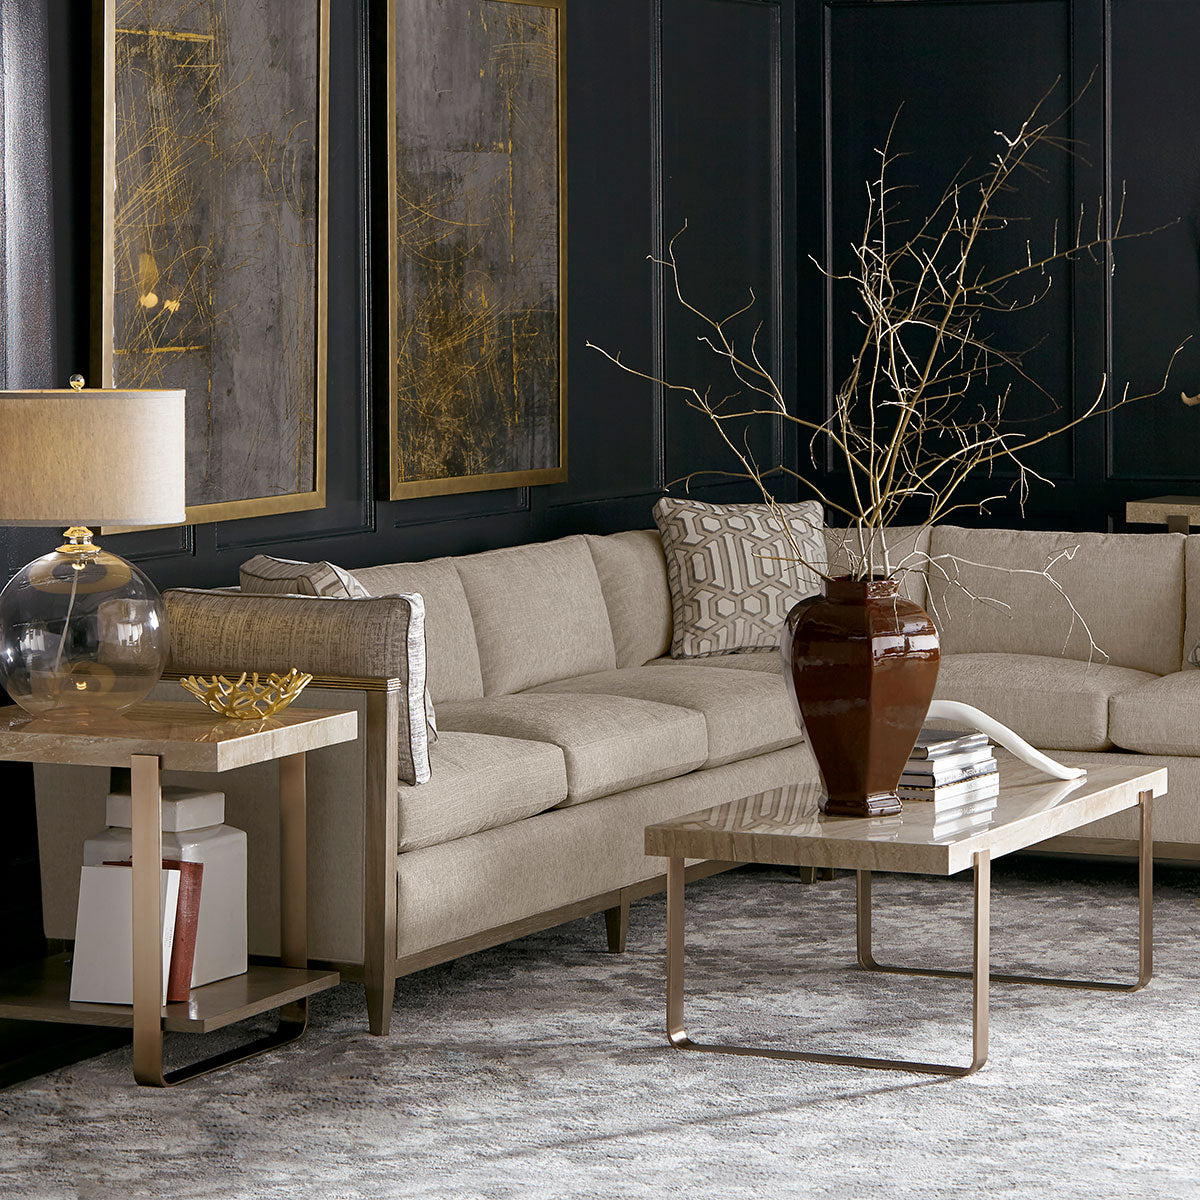 Travertine Slab Coffee Table: CAROLINA TRAVERTINE COFFEE TABLE